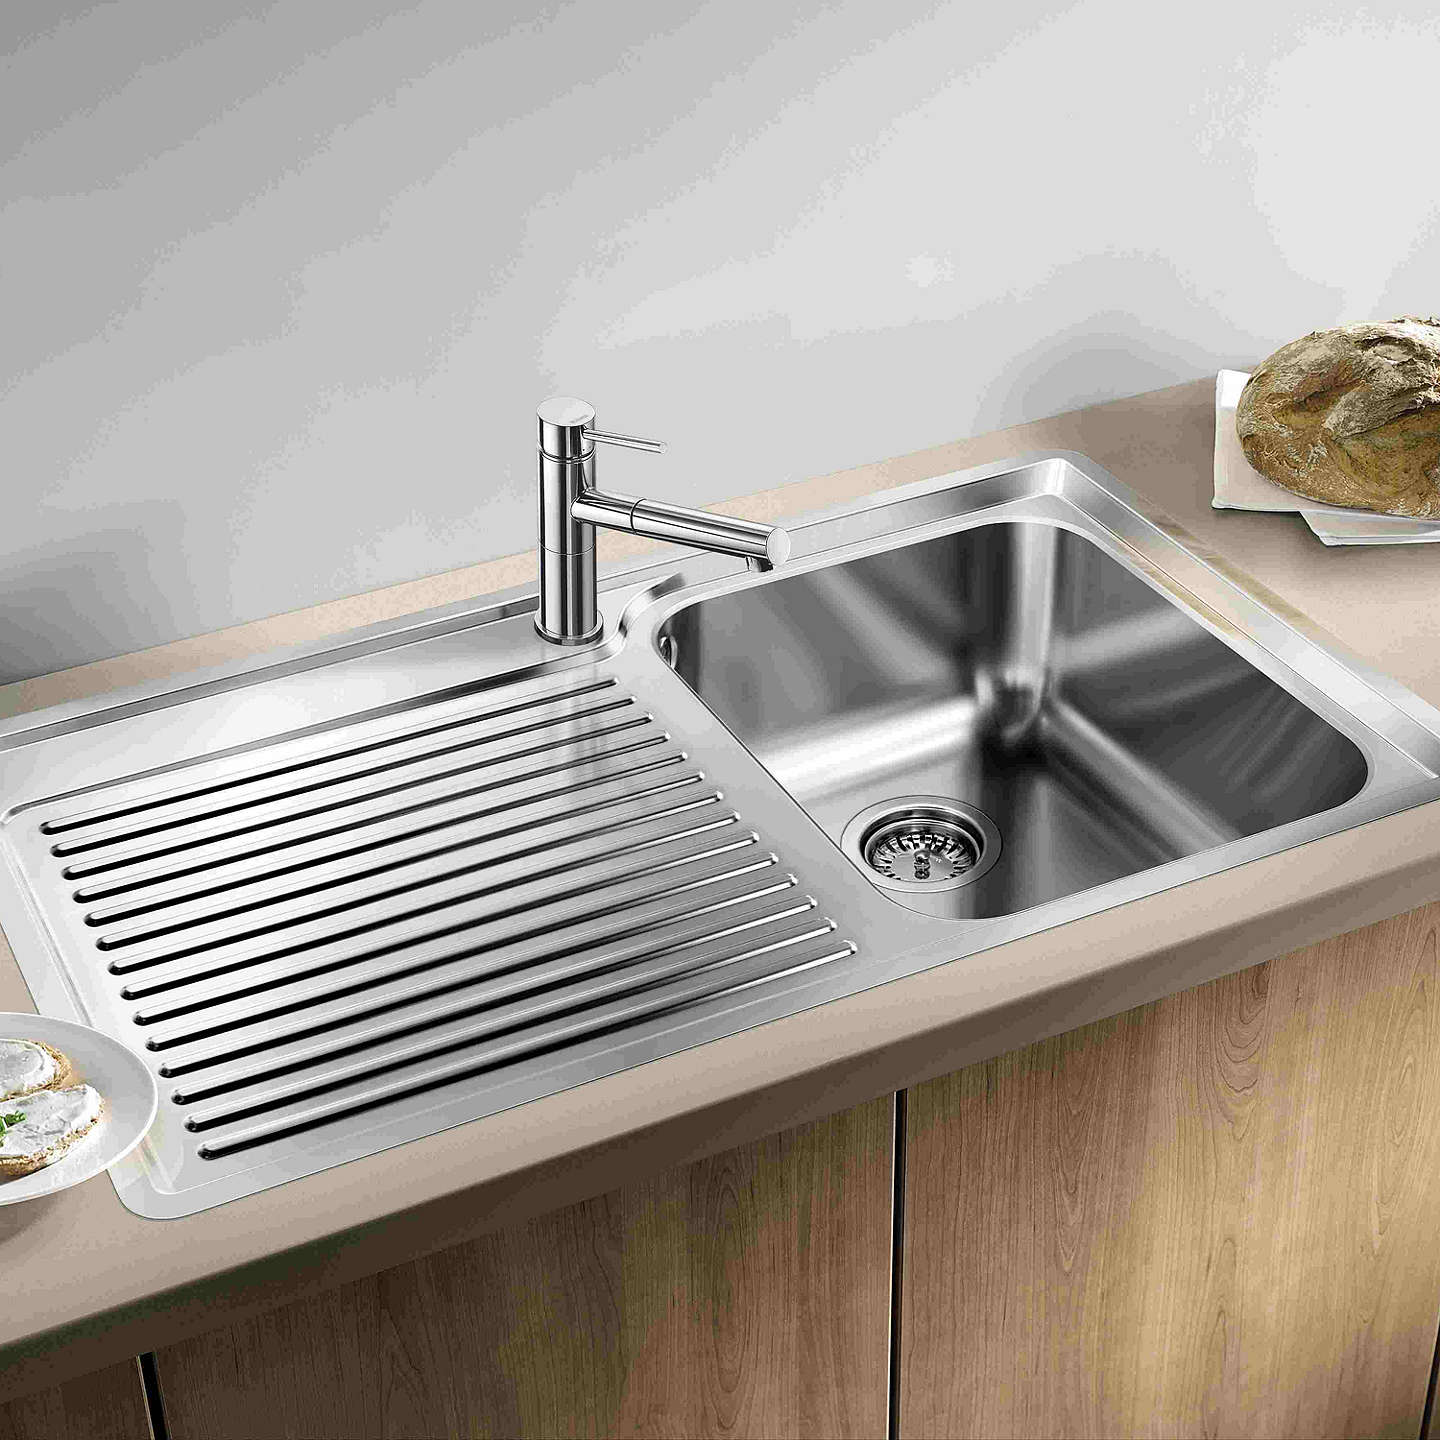 Inset Kitchen Sinks Blanco classic 45 s if single inset kitchen sink with right hand buyblanco classic 45 s if single inset kitchen sink with right hand bowl stainless workwithnaturefo